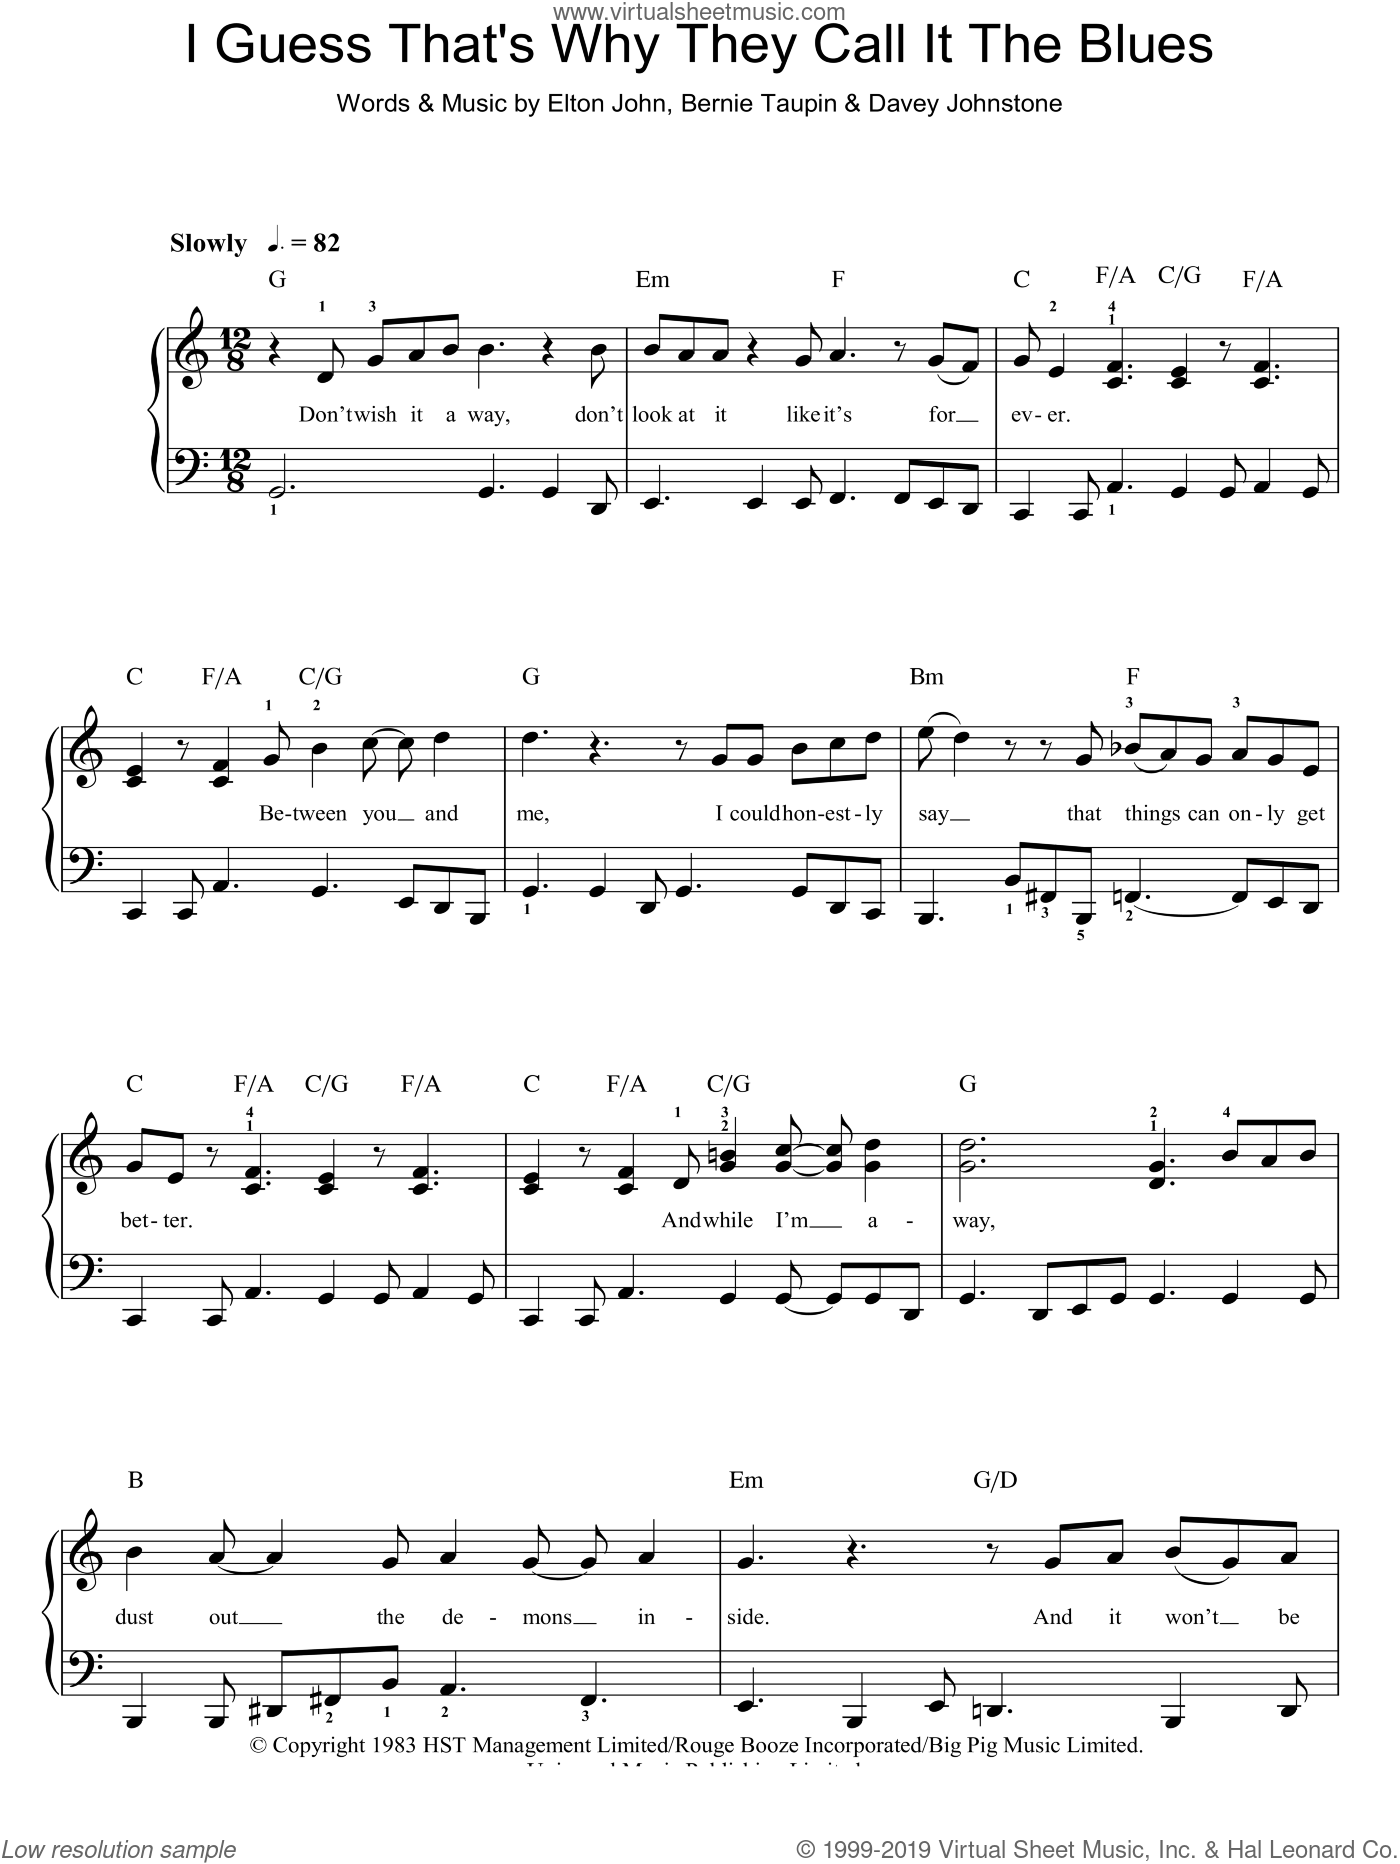 I Guess That's Why They Call It The Blues sheet music for piano solo (chords) by Davey Johnstone